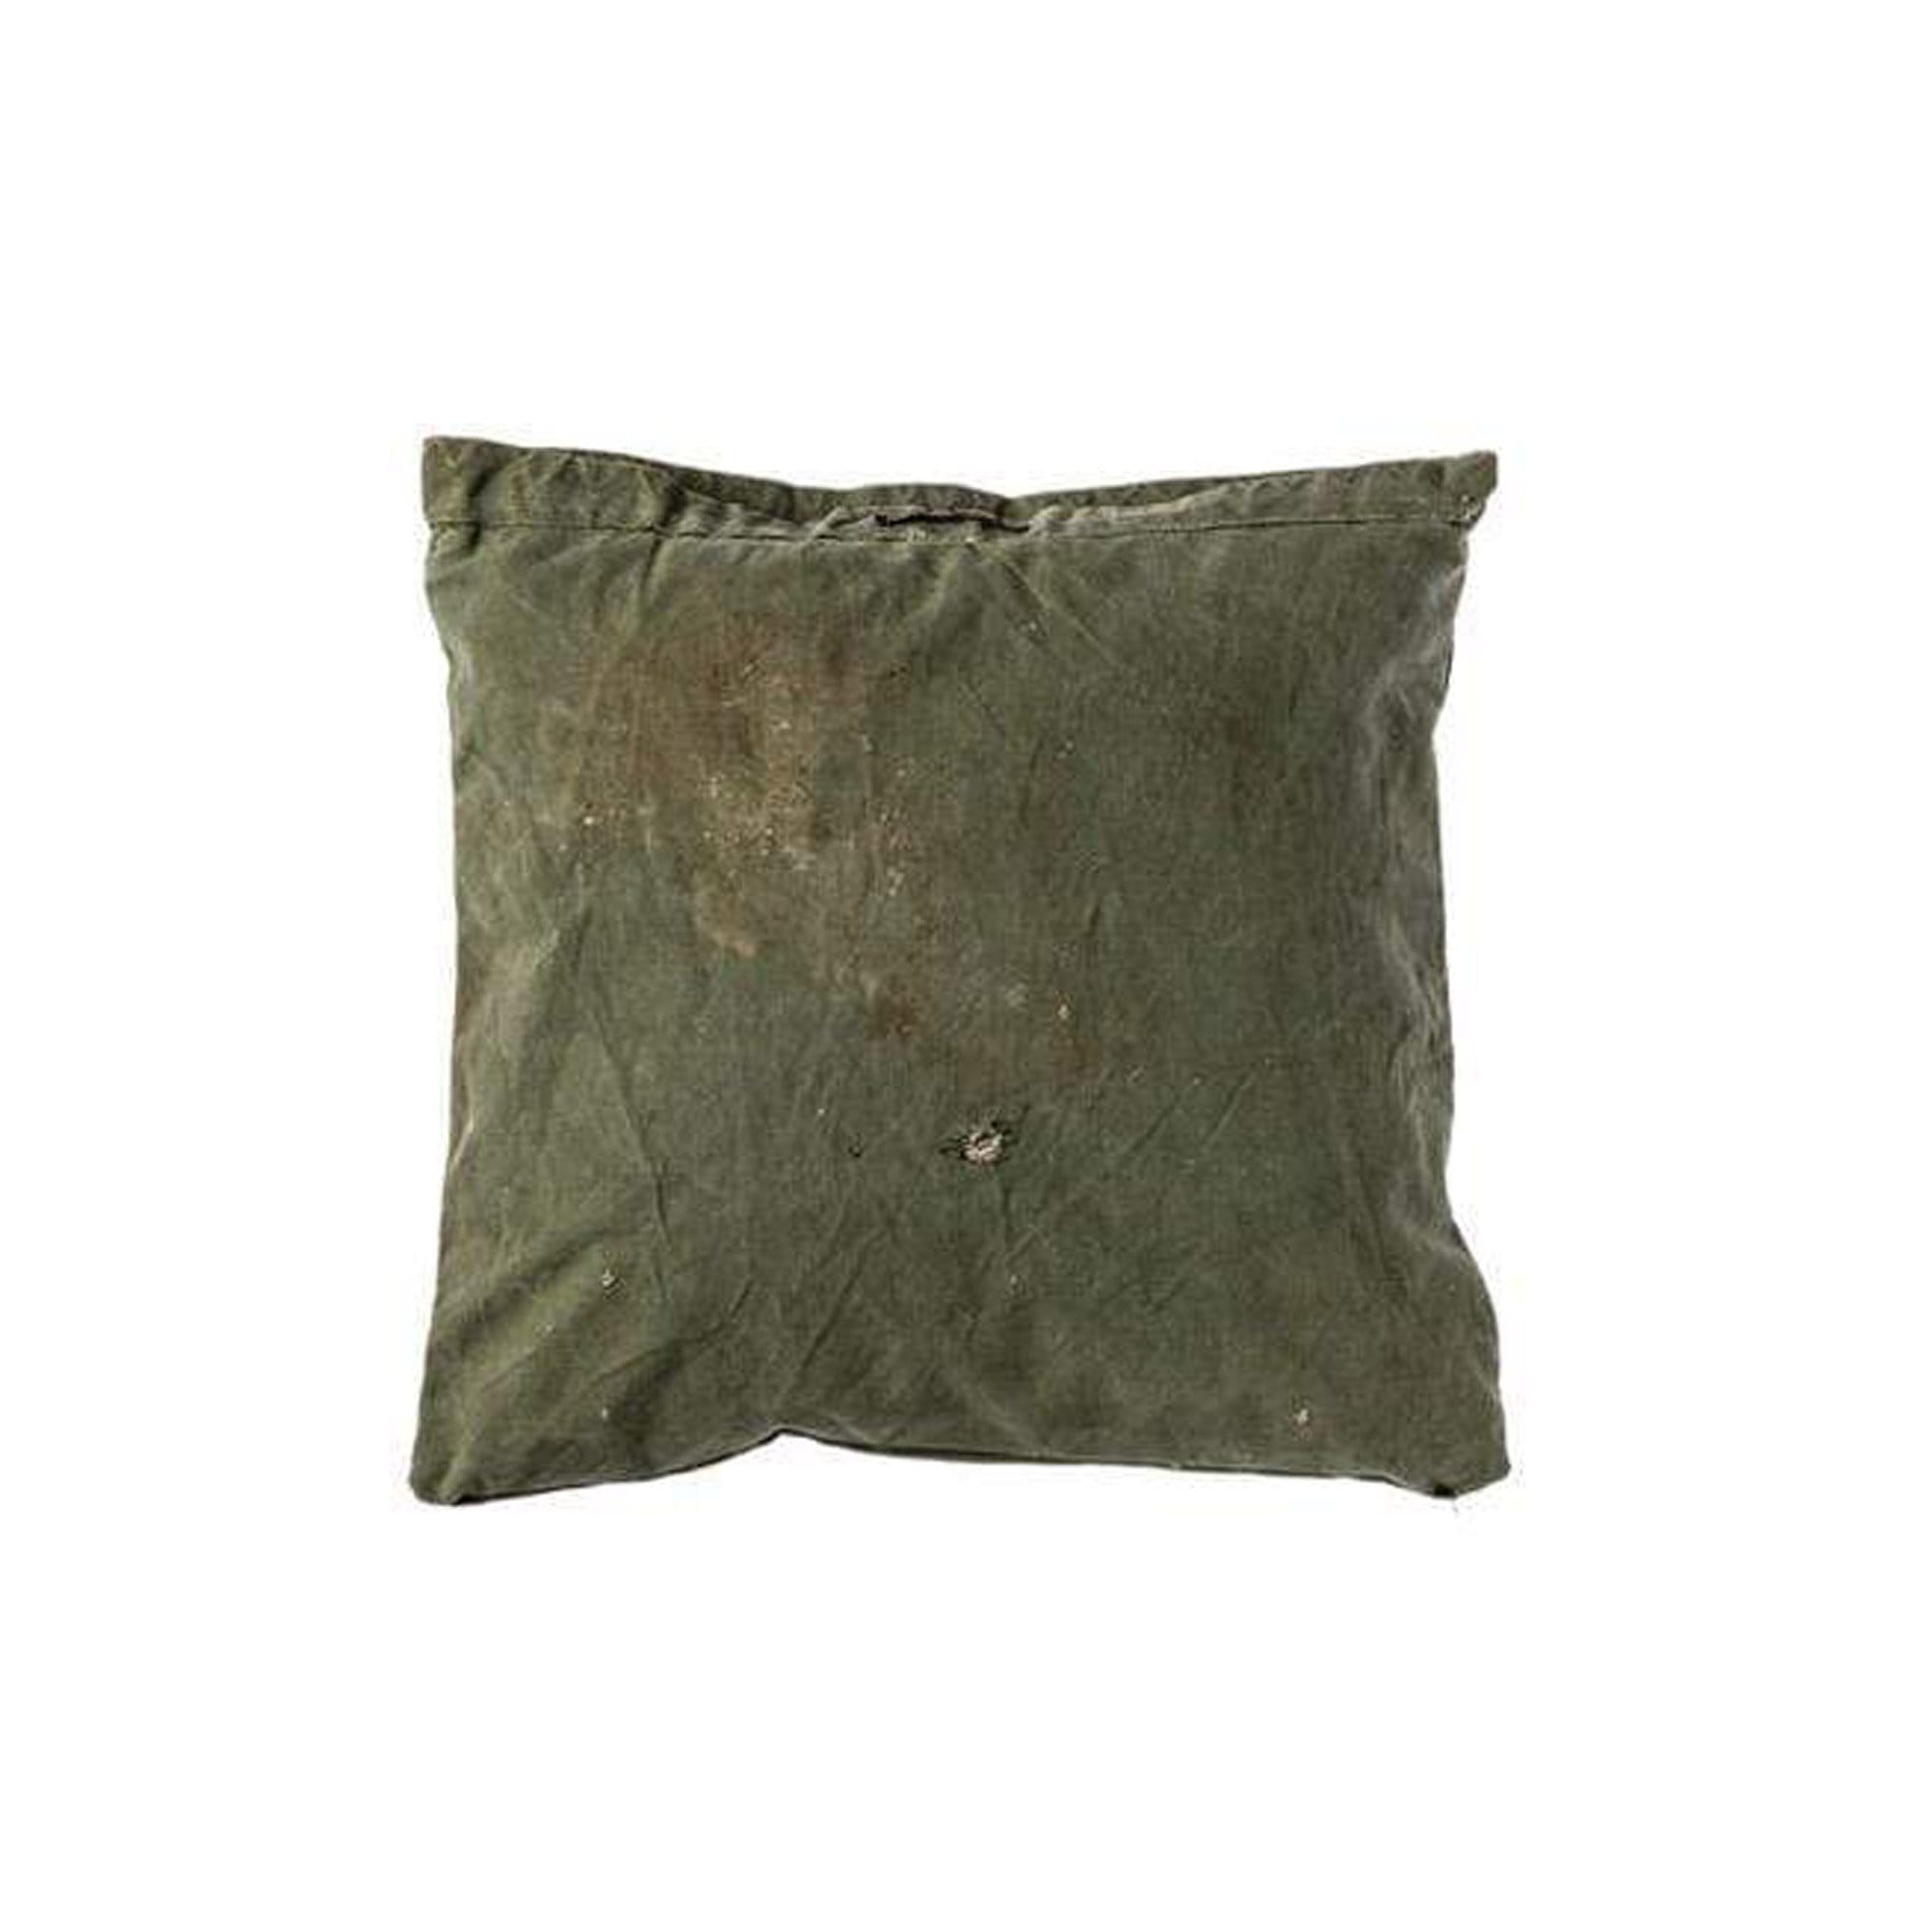 Puebco Möbel & Accessories Old Tent Cushion Cover